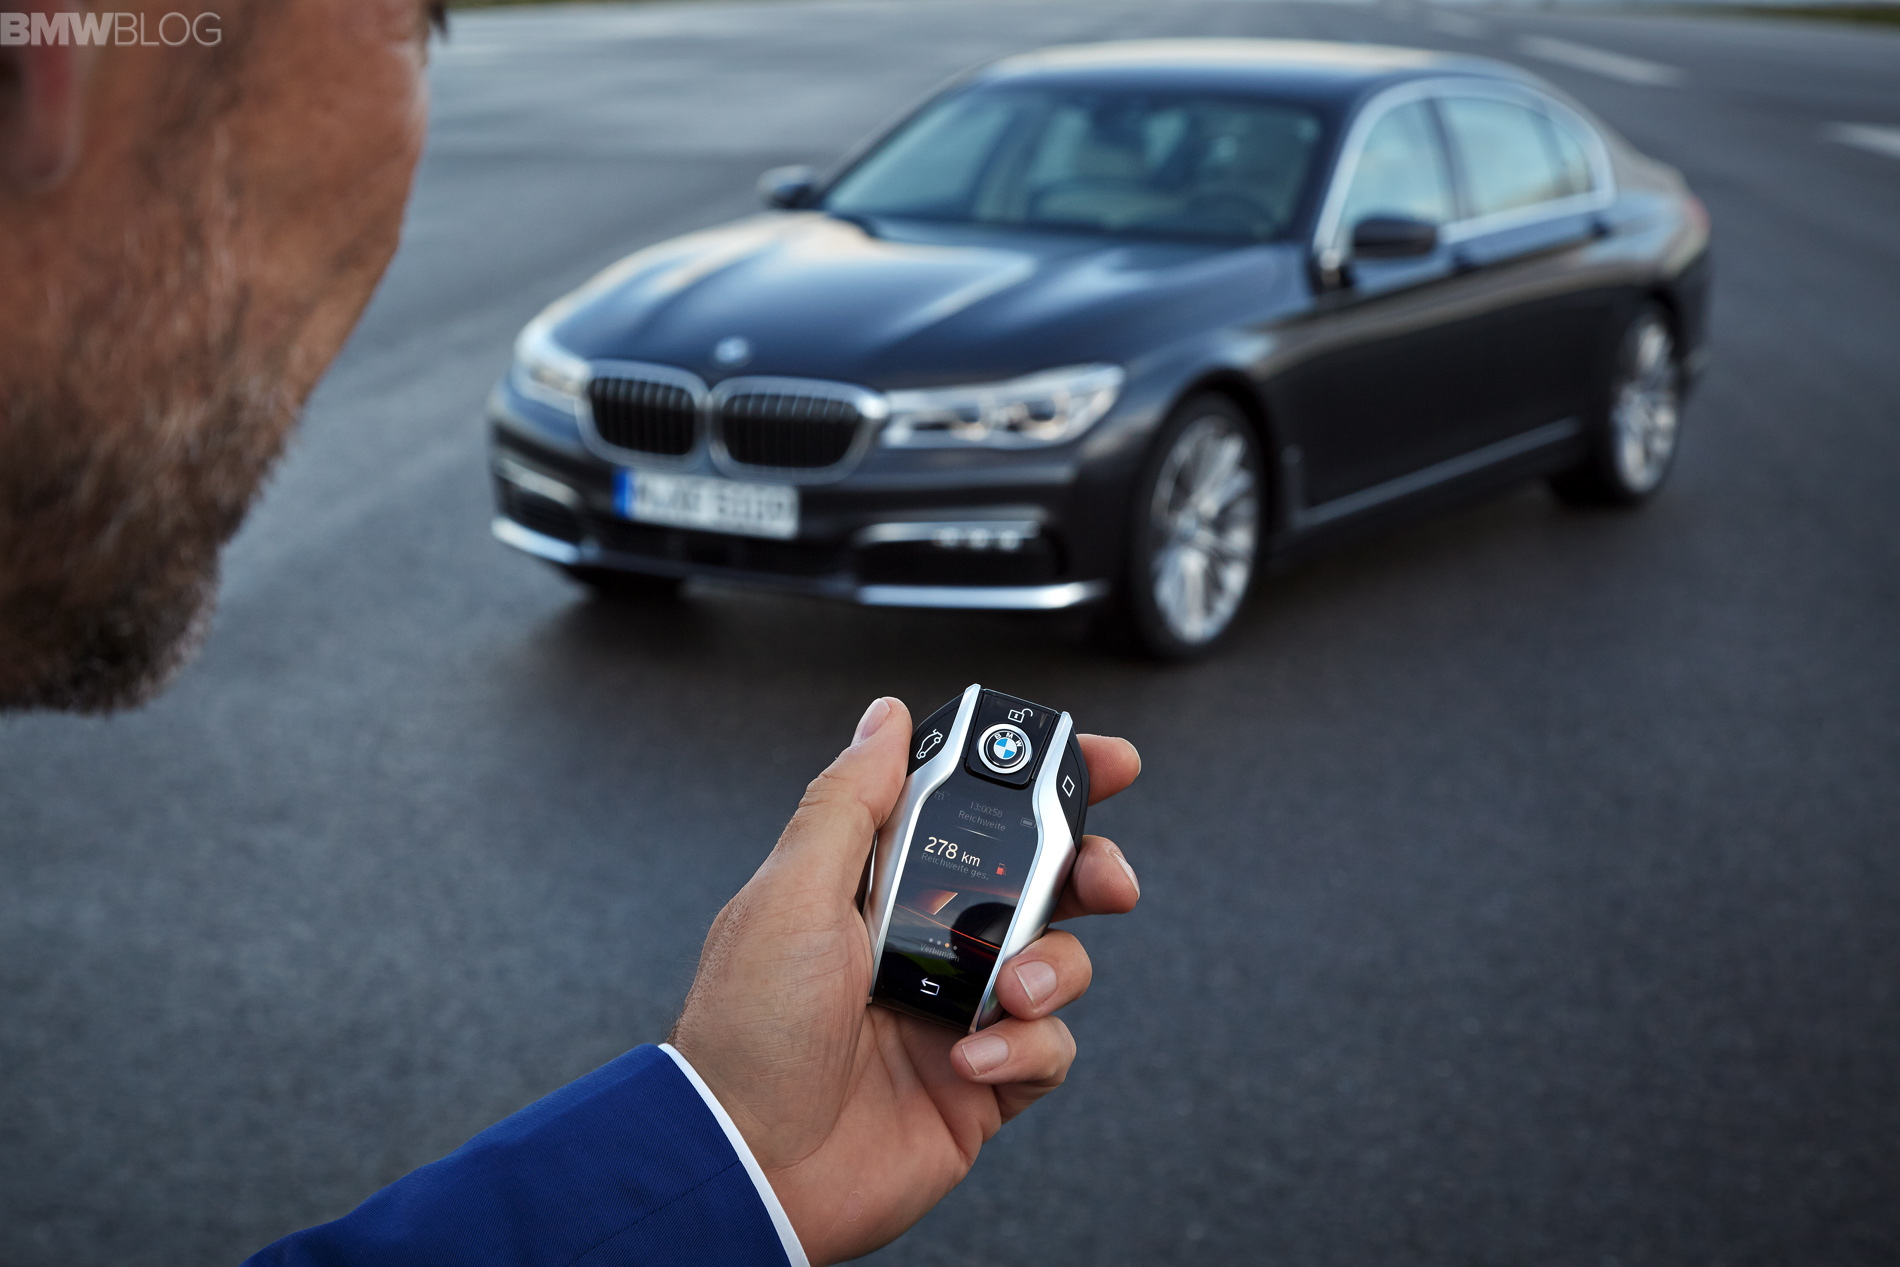 The new key fob for BMW 7 Series activates Remote Control